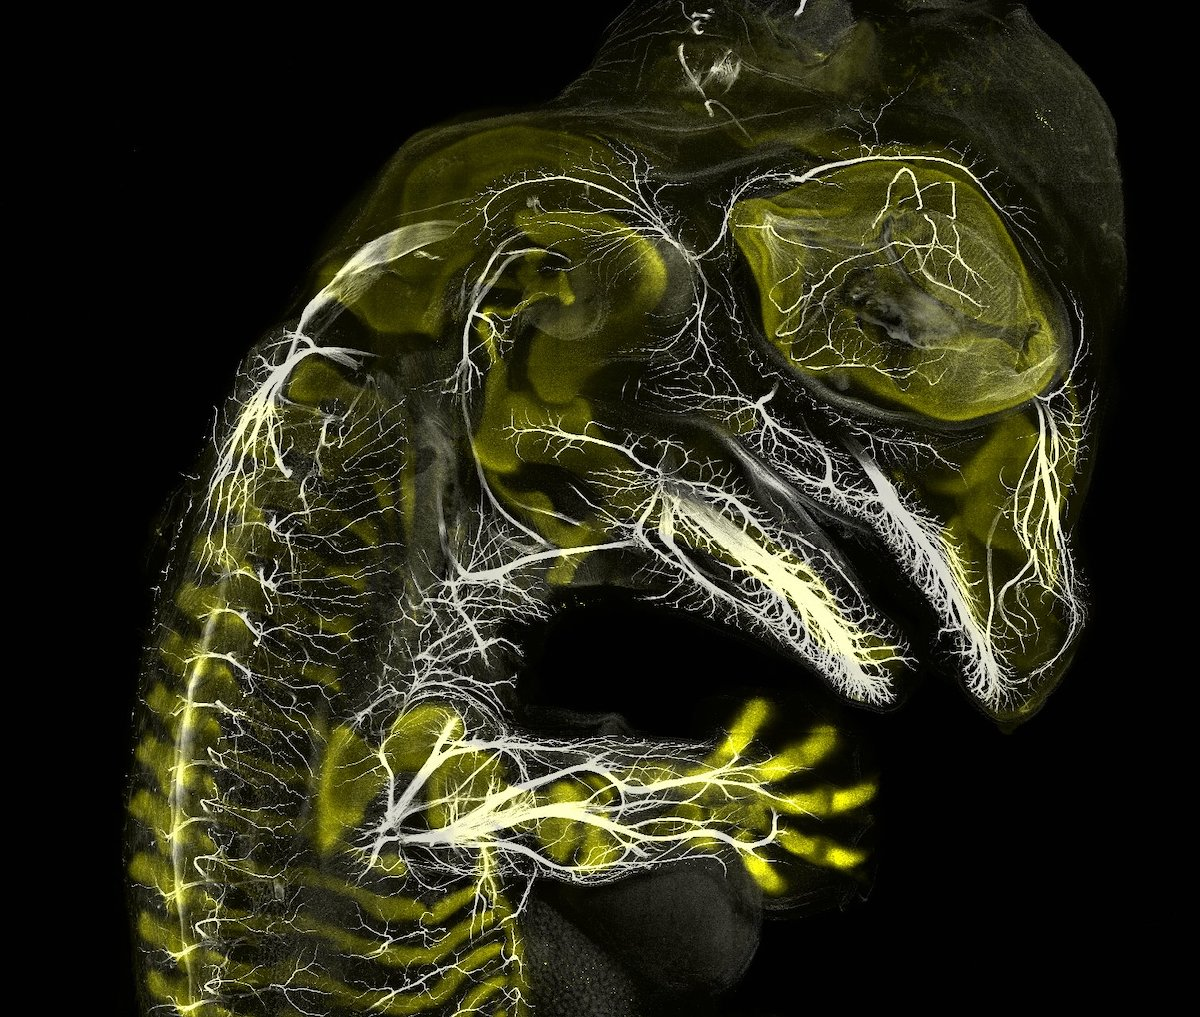 Alligator embryo developing nerves and skeleton